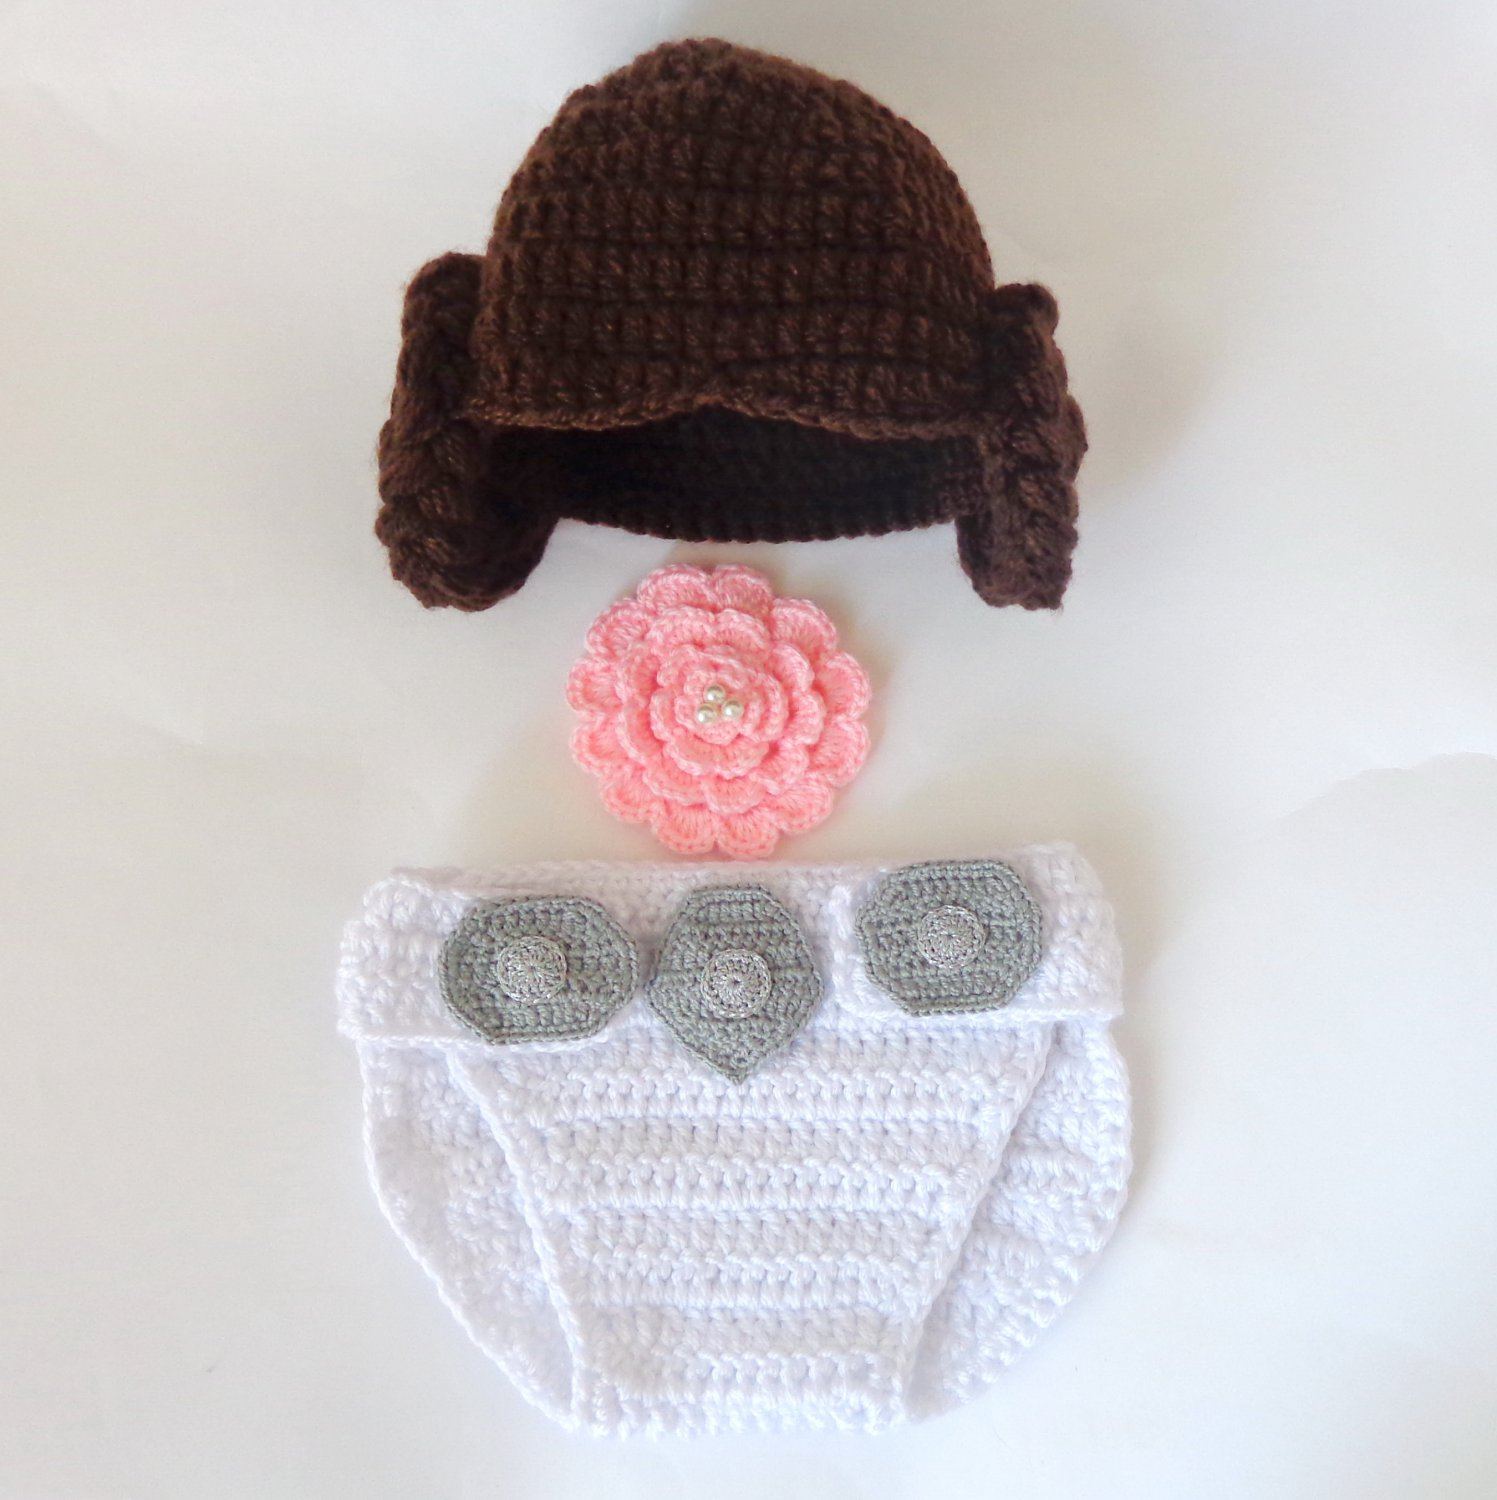 Princess Leia Baby Hat And Diaper Cover Set From Star Wars For Girl With Big Flower Newborn -3 month